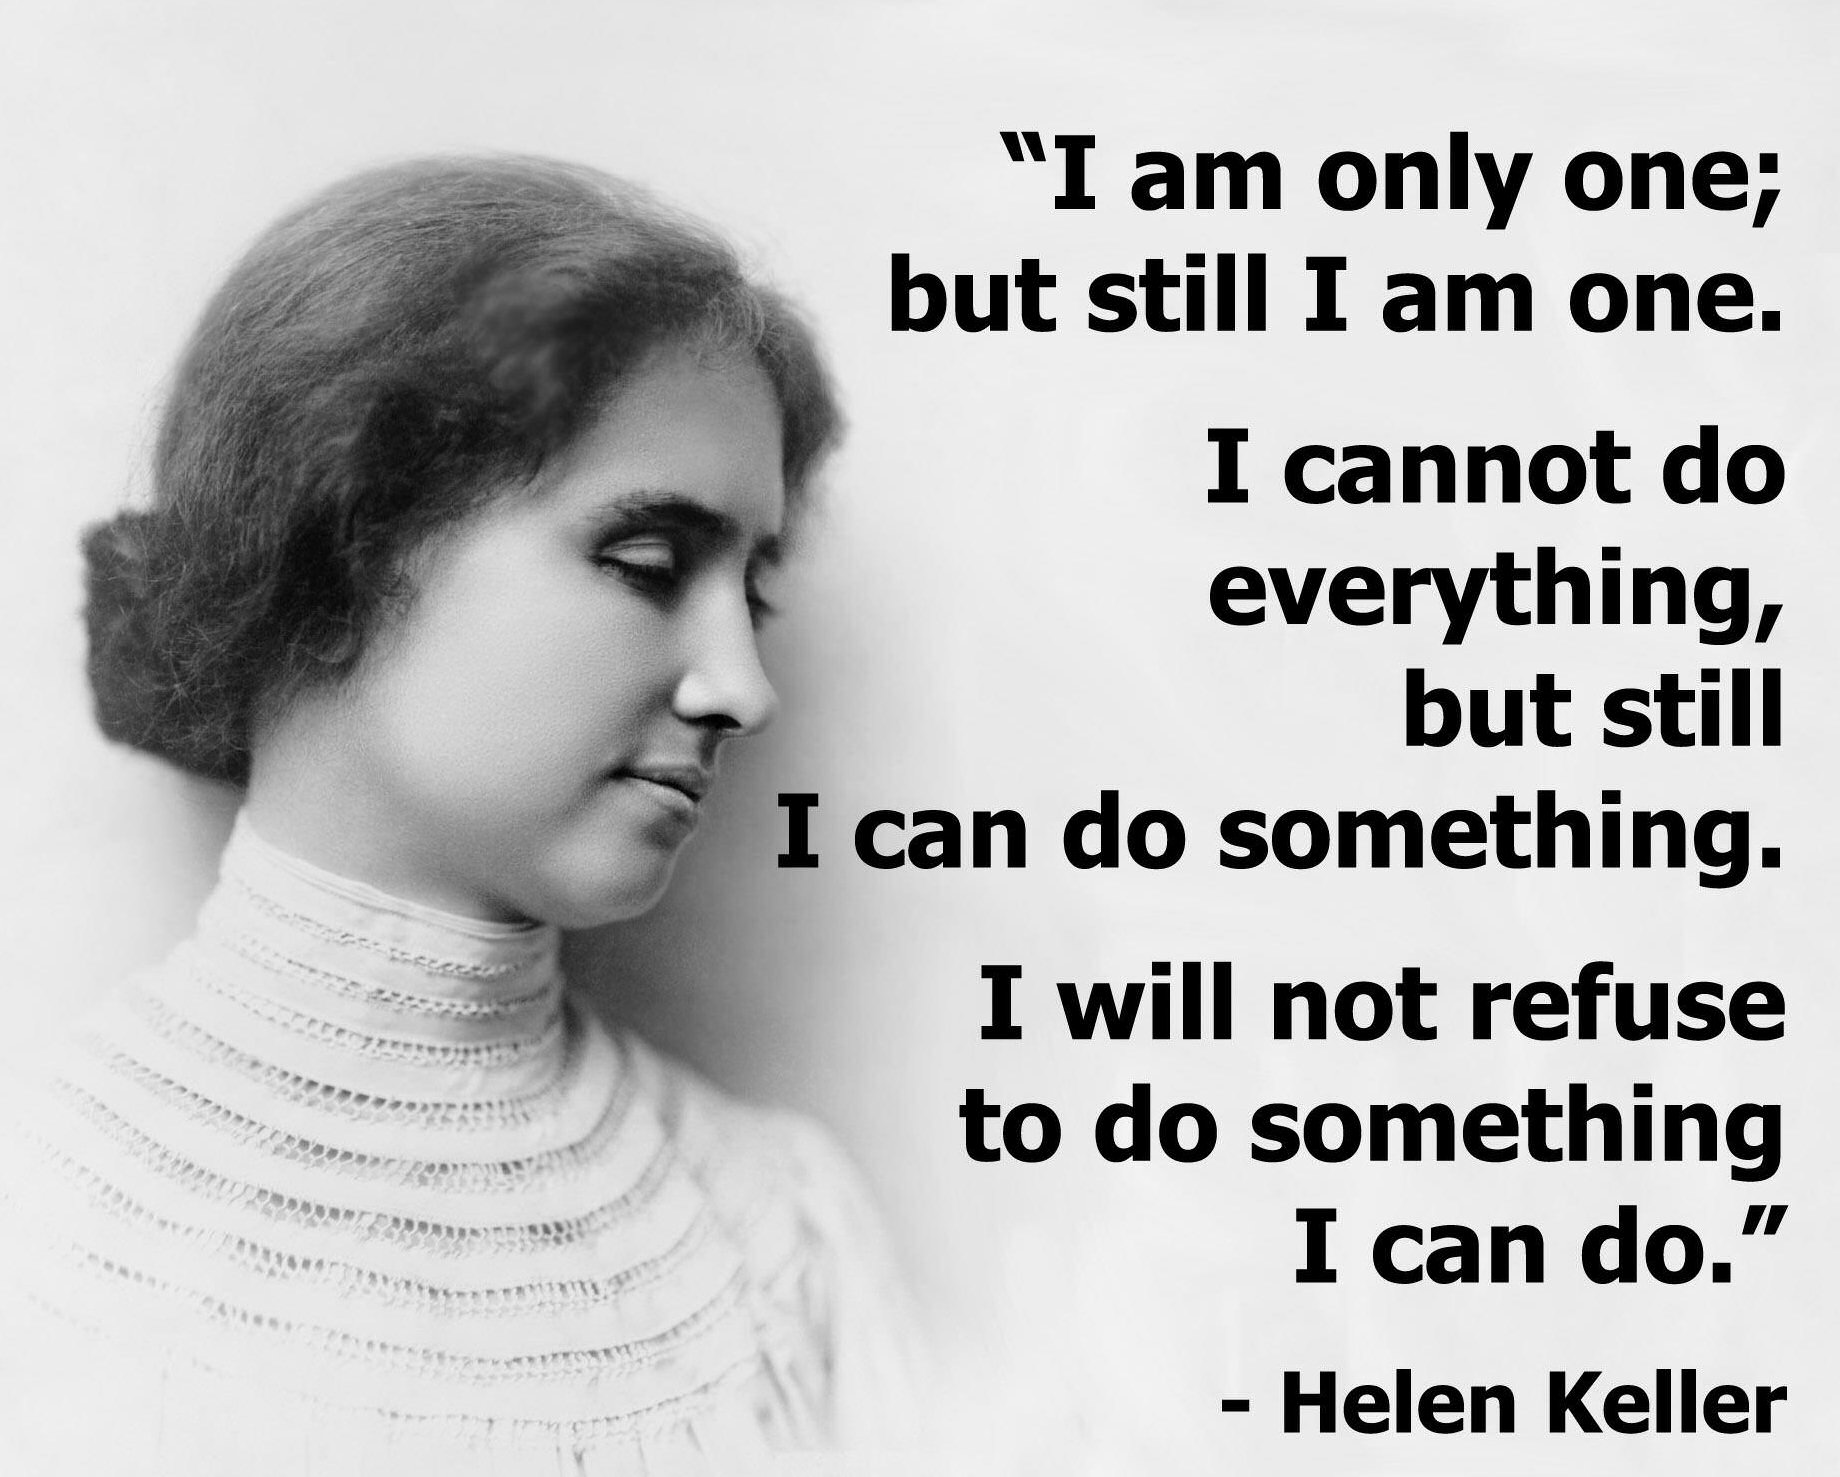 Helen keller happiness optimism the ministry of happiness helen keller happiness quote altavistaventures Images